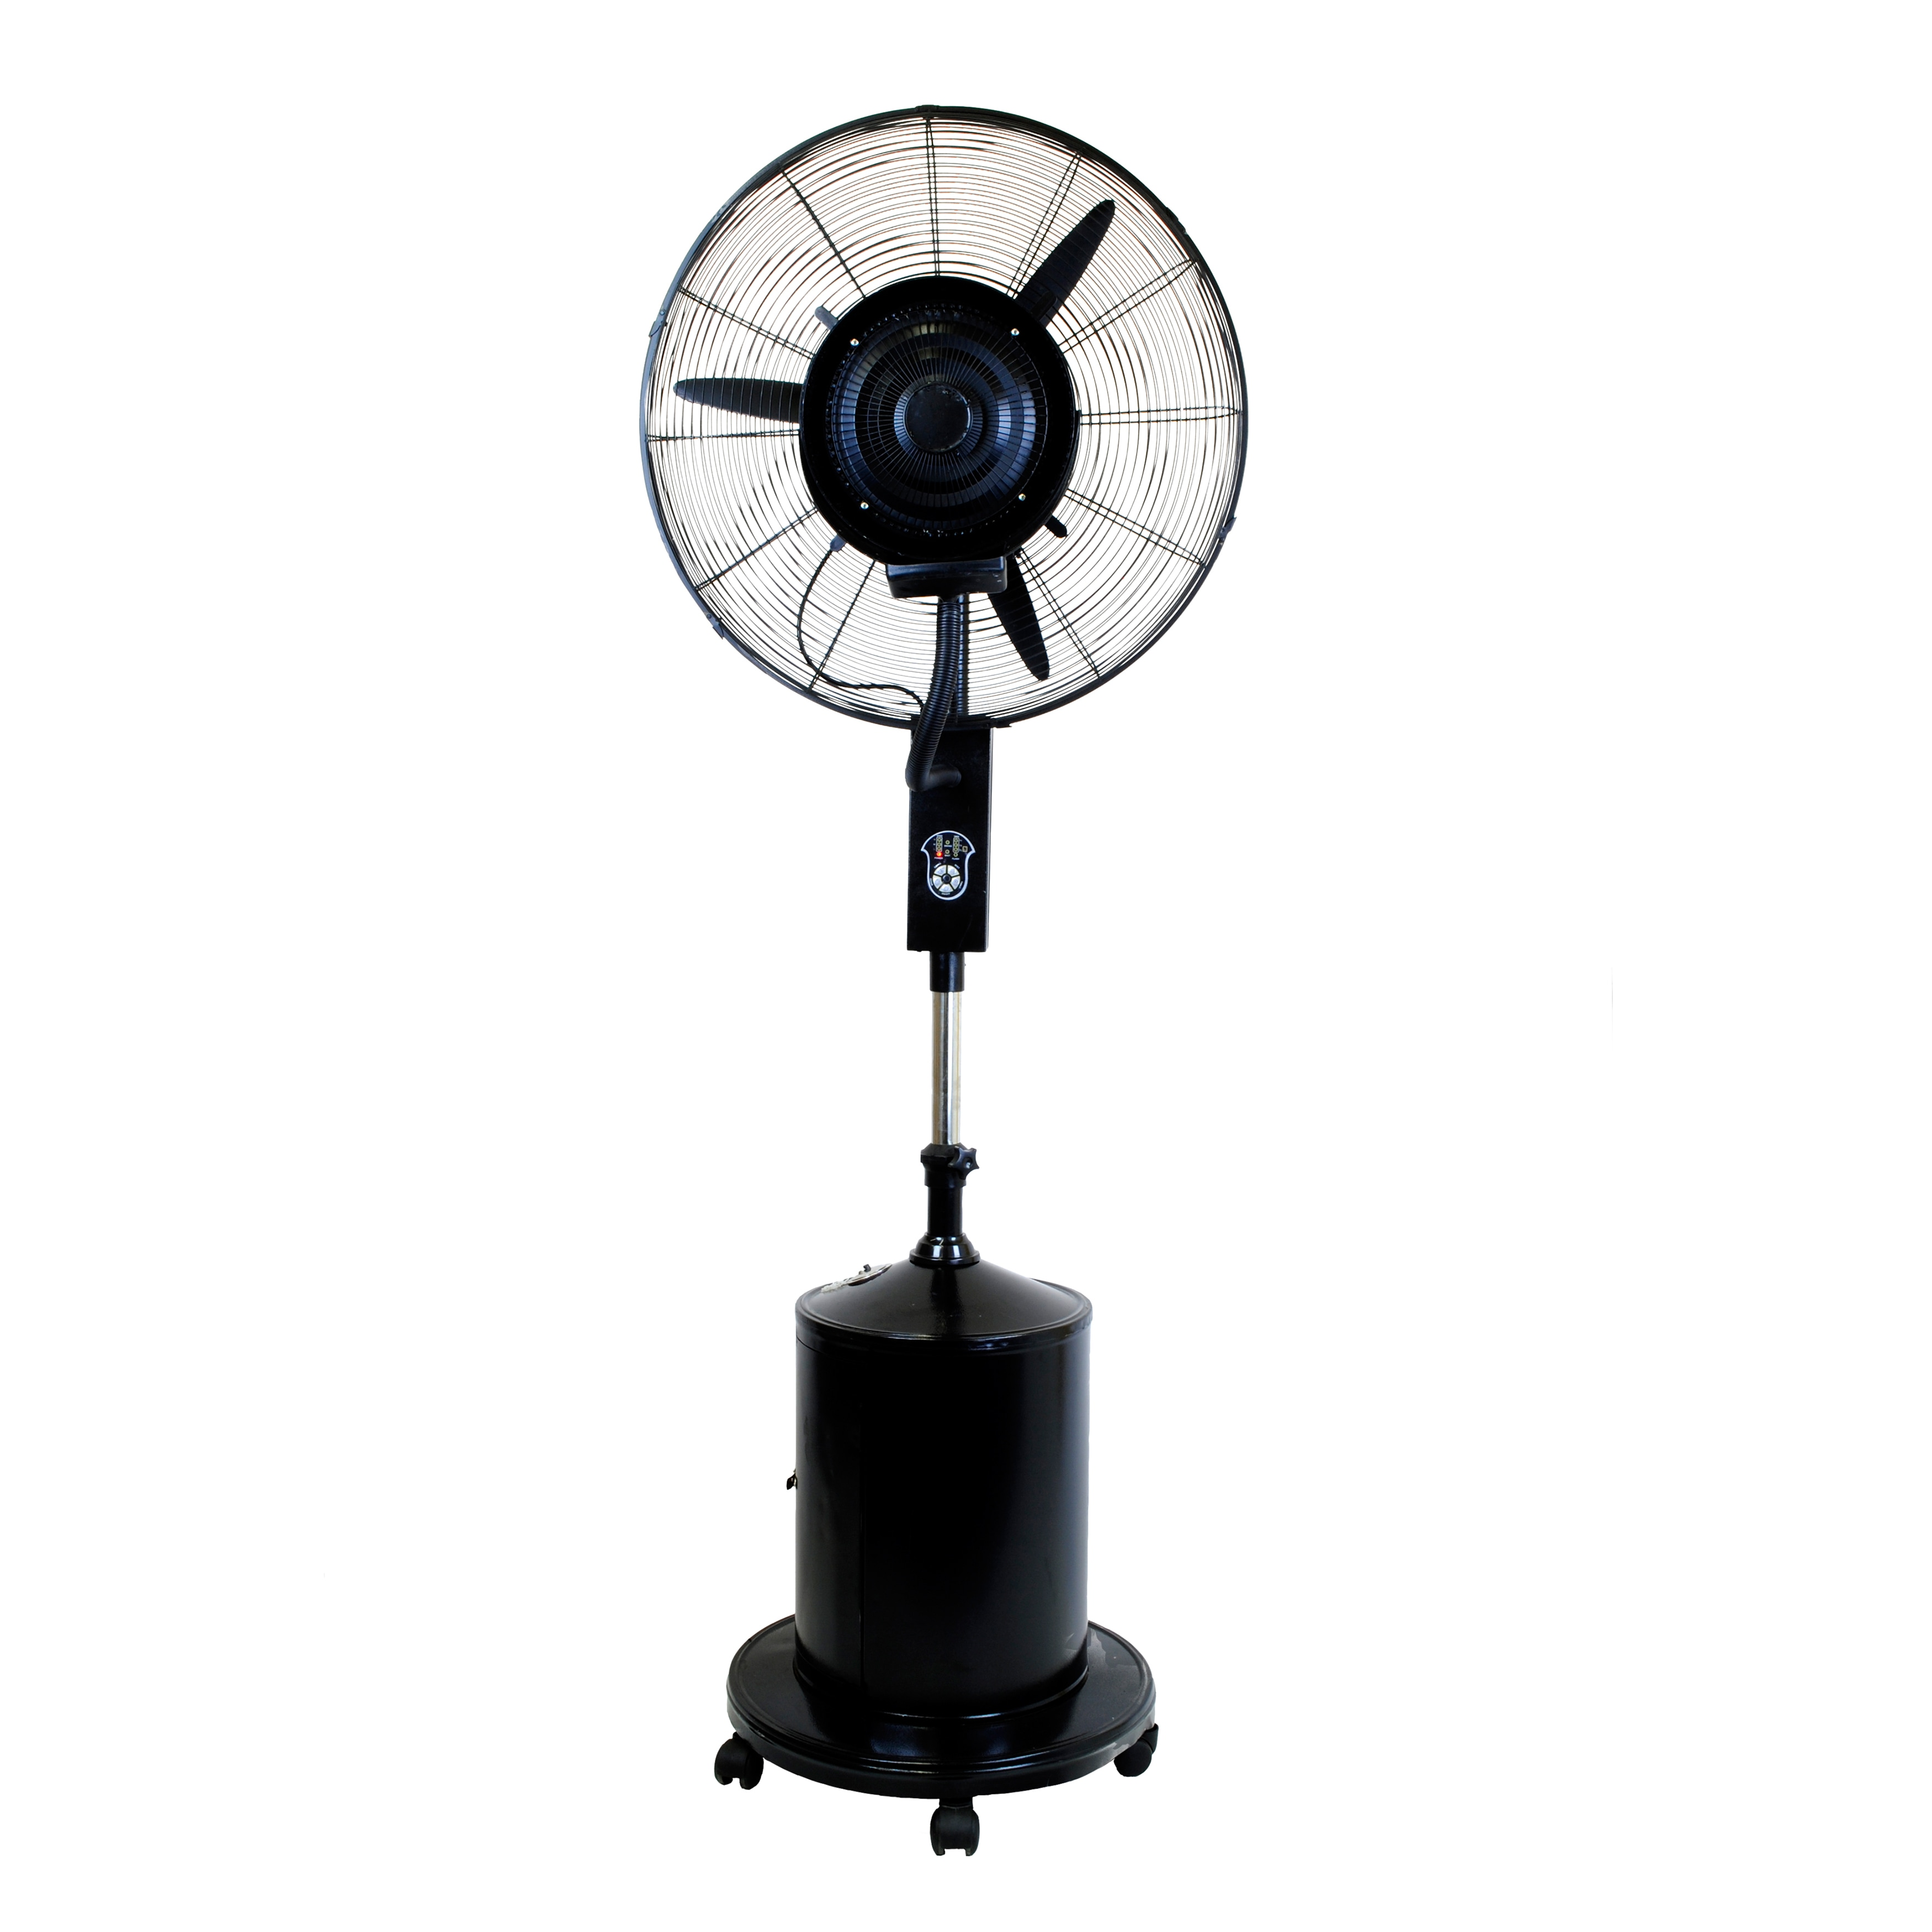 Lava Heat Oasis Misting Fan at Sears.com